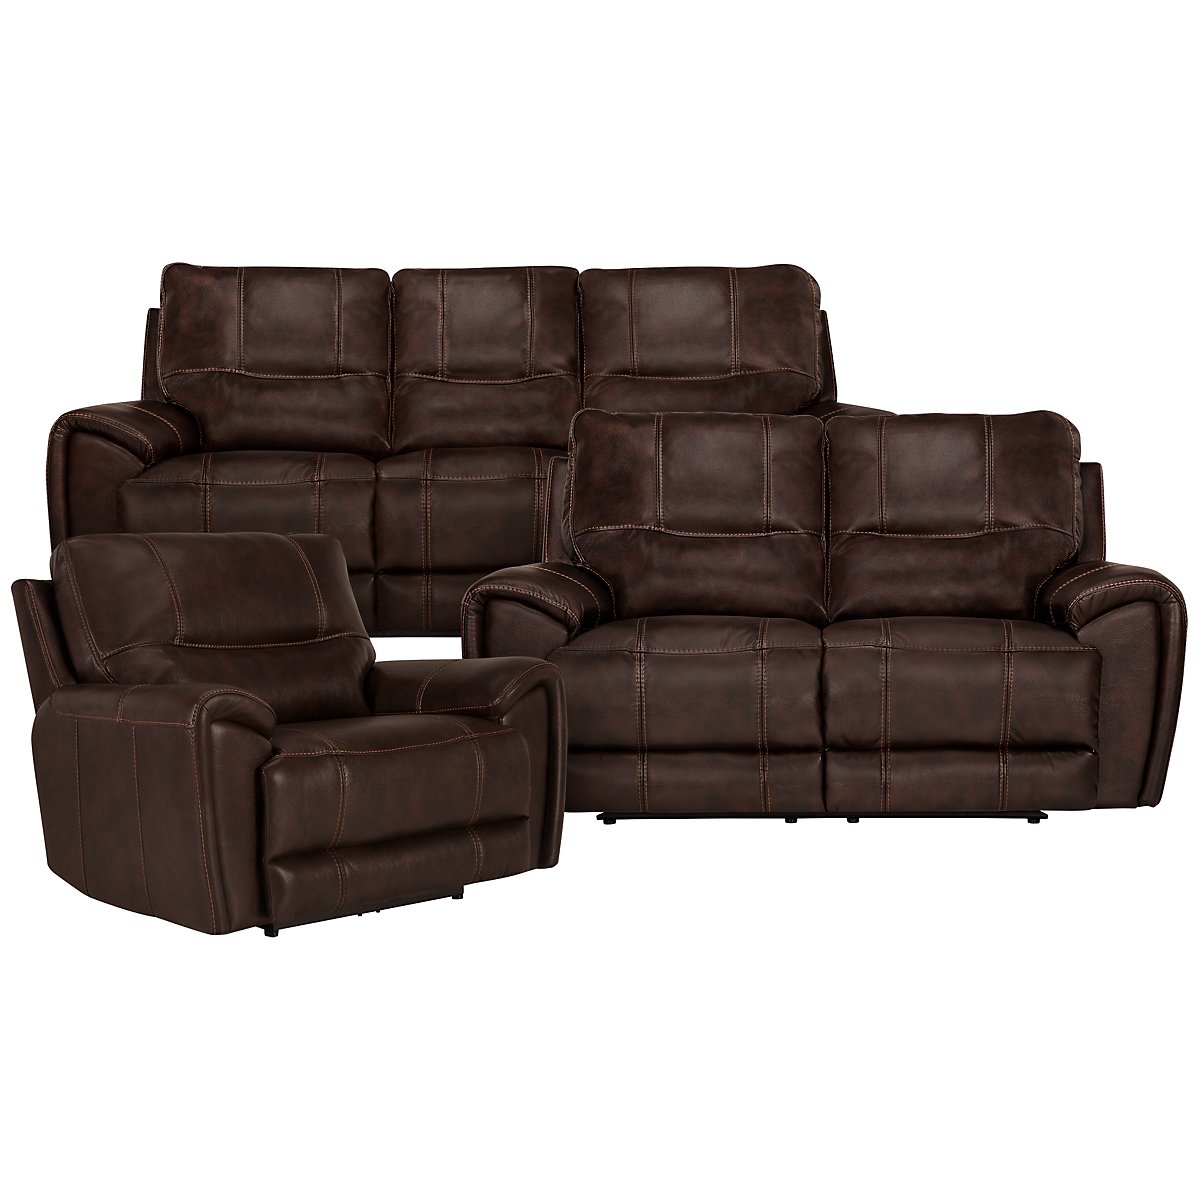 Nico Dark Brown Microfiber Power Reclining Living Room